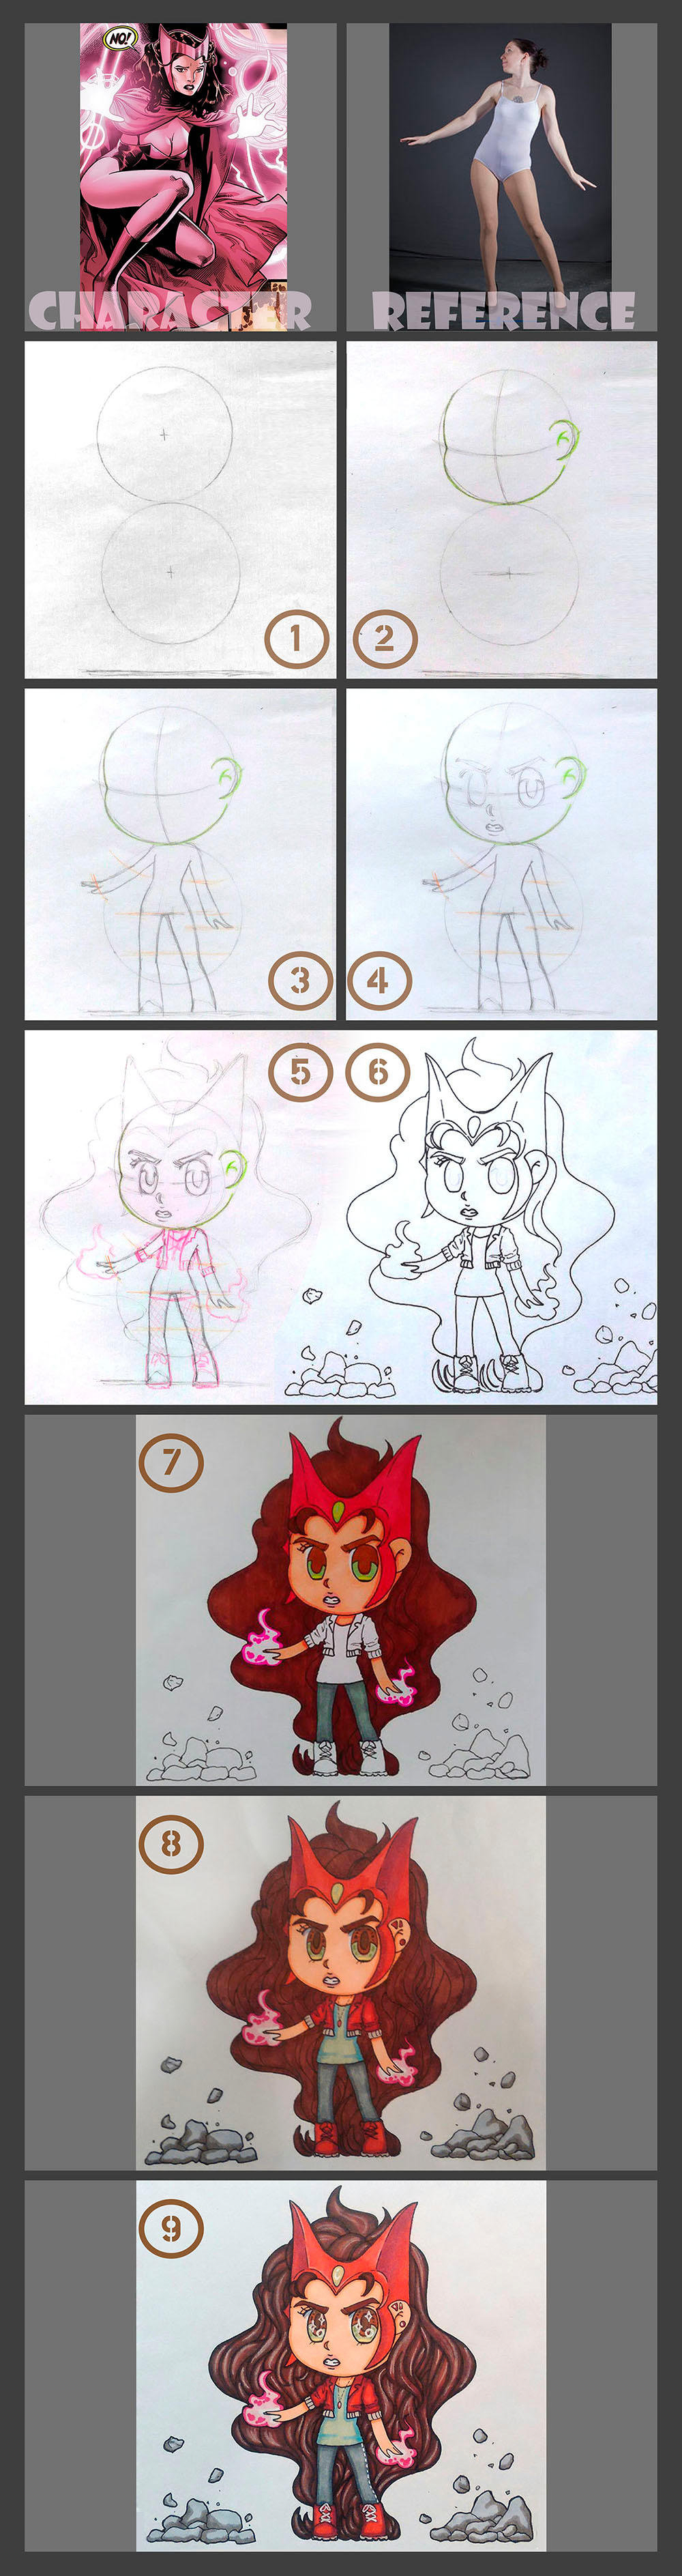 Chibi Scarlet Witch Drawing Www Picturesboss Com